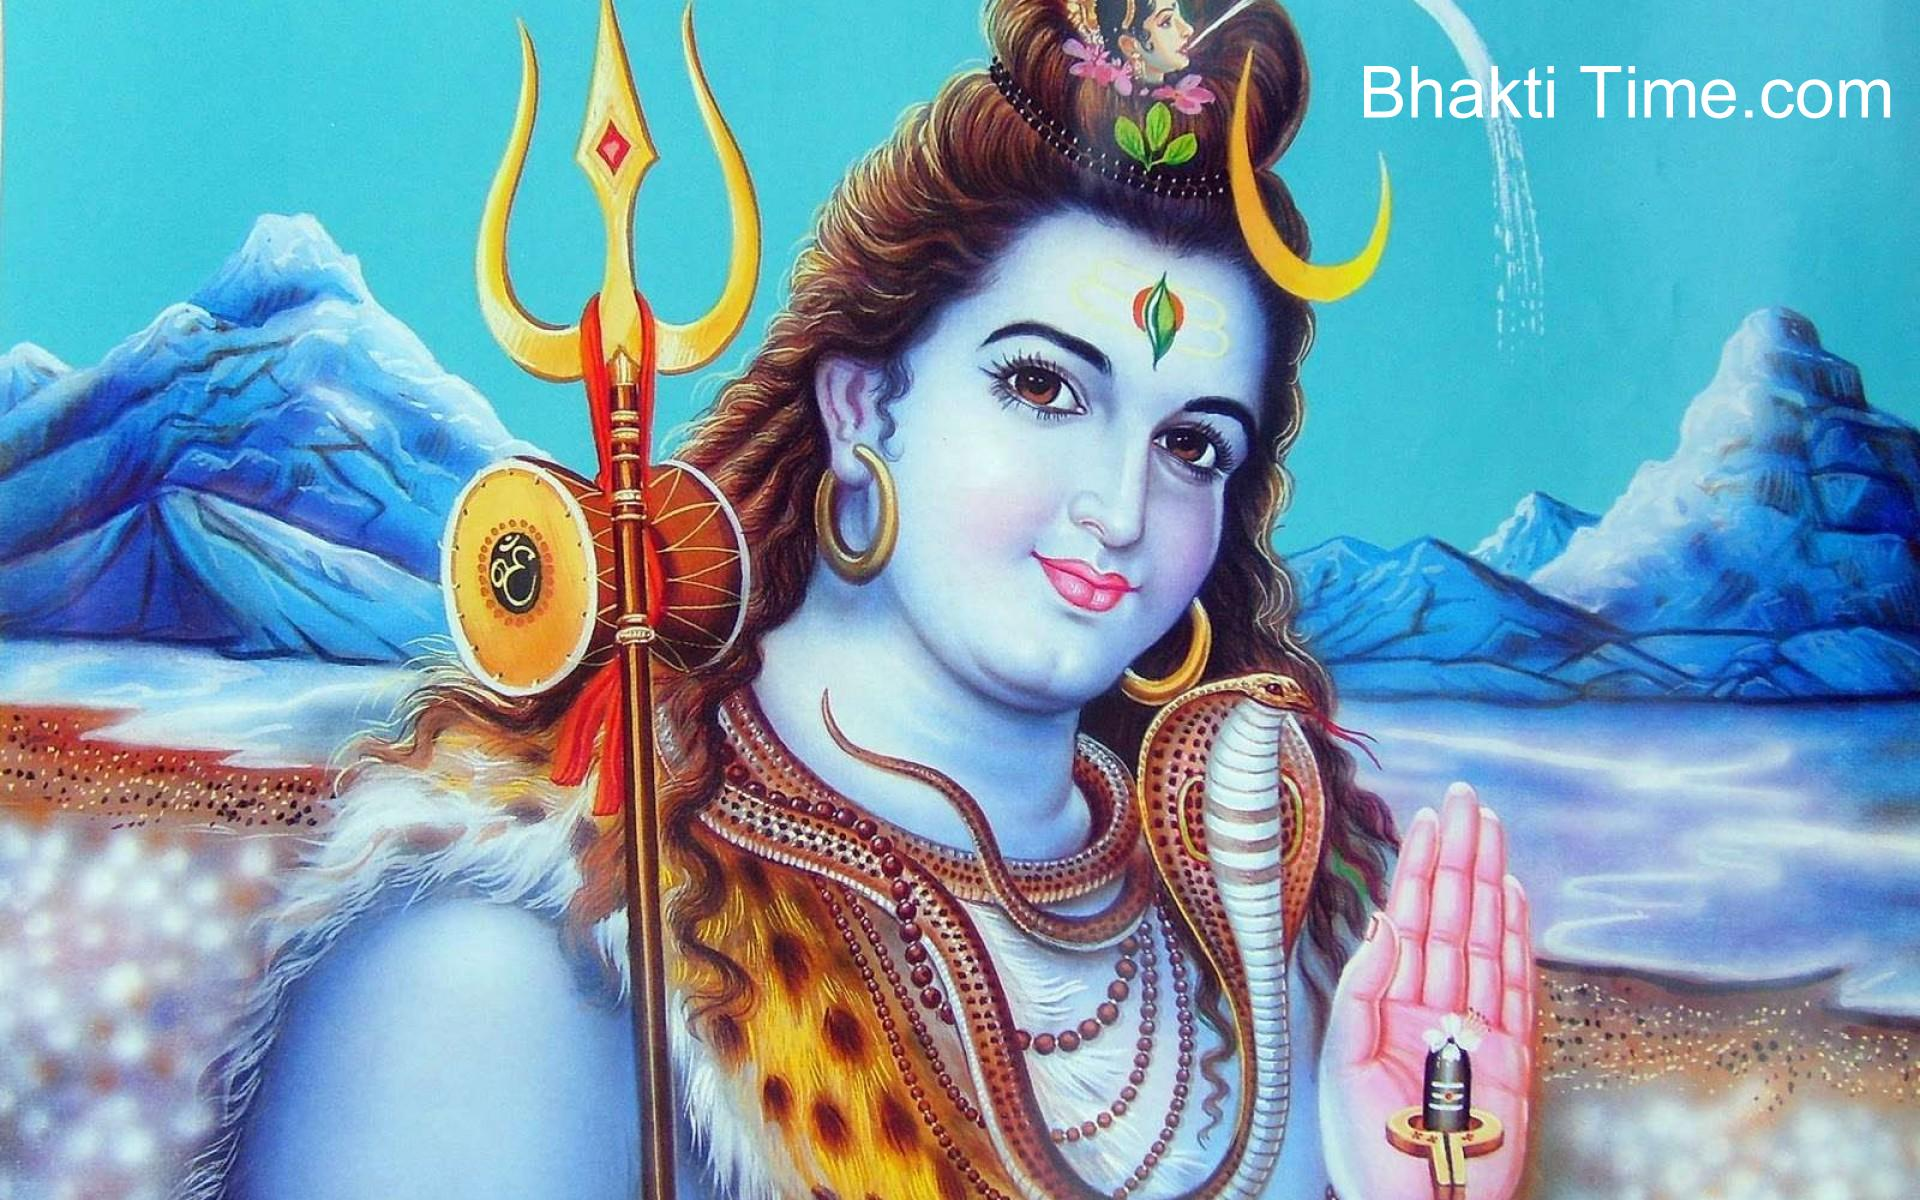 10  Top Shri Shiv Bhagwan Images, Shiv Shankar Bhagwan HD Wallpapers